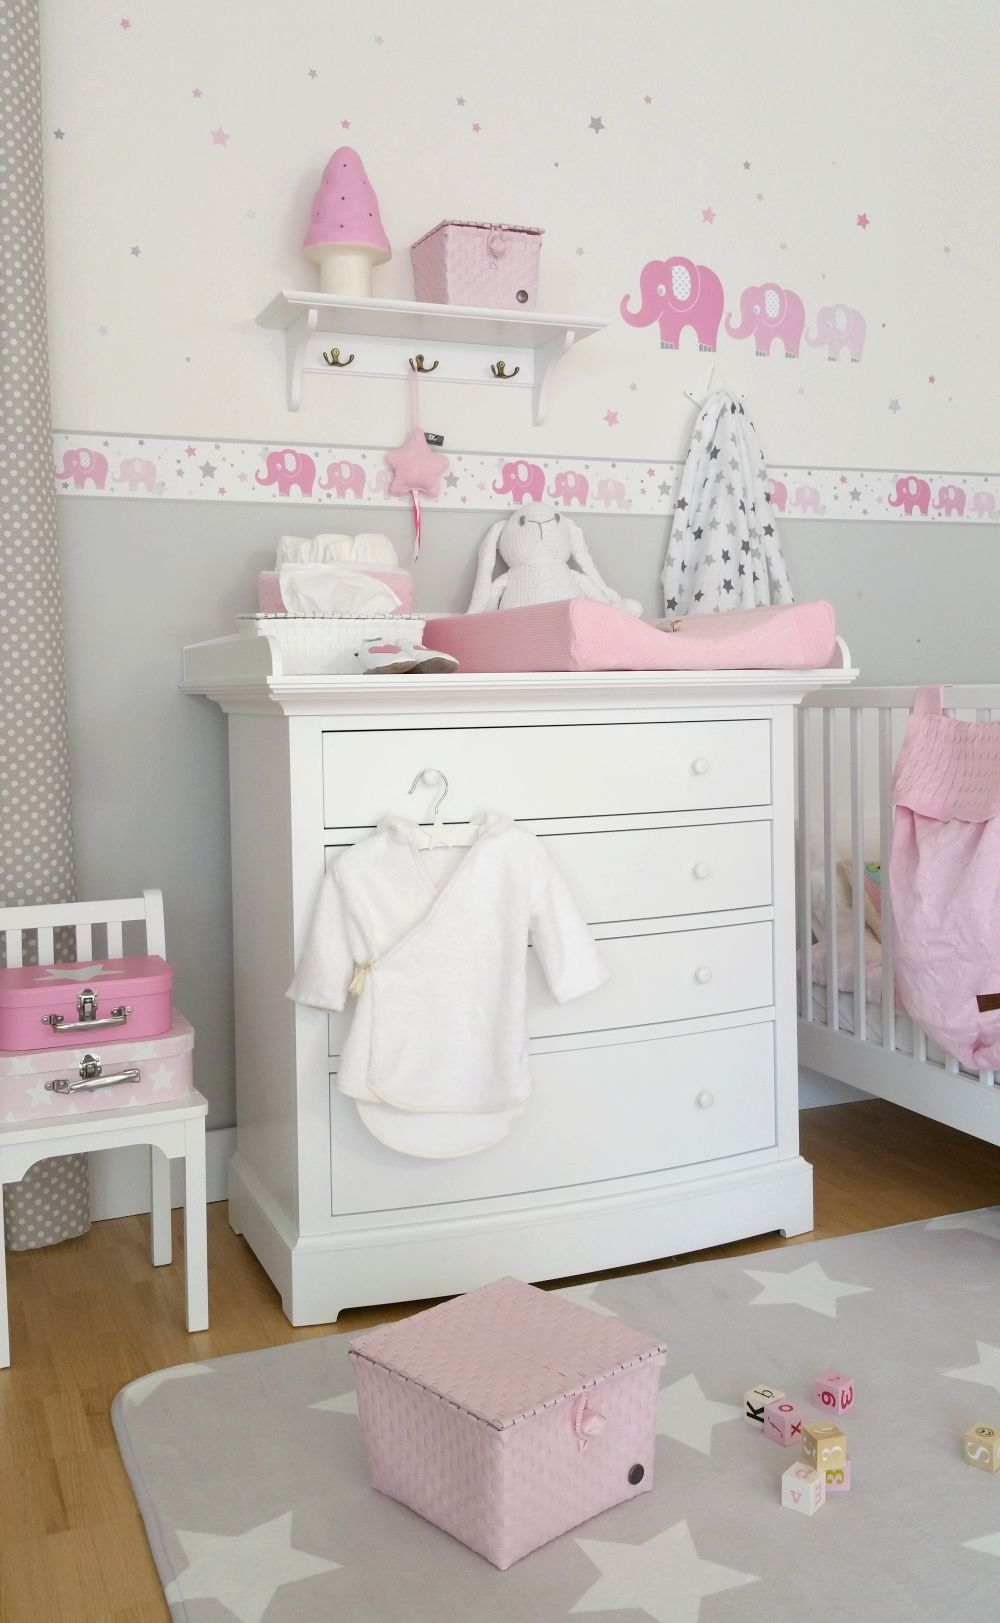 kinderzimmer bord re elefanten rosa grau selbstklebend in 2018 n u r s e r y a n d k i d s r. Black Bedroom Furniture Sets. Home Design Ideas